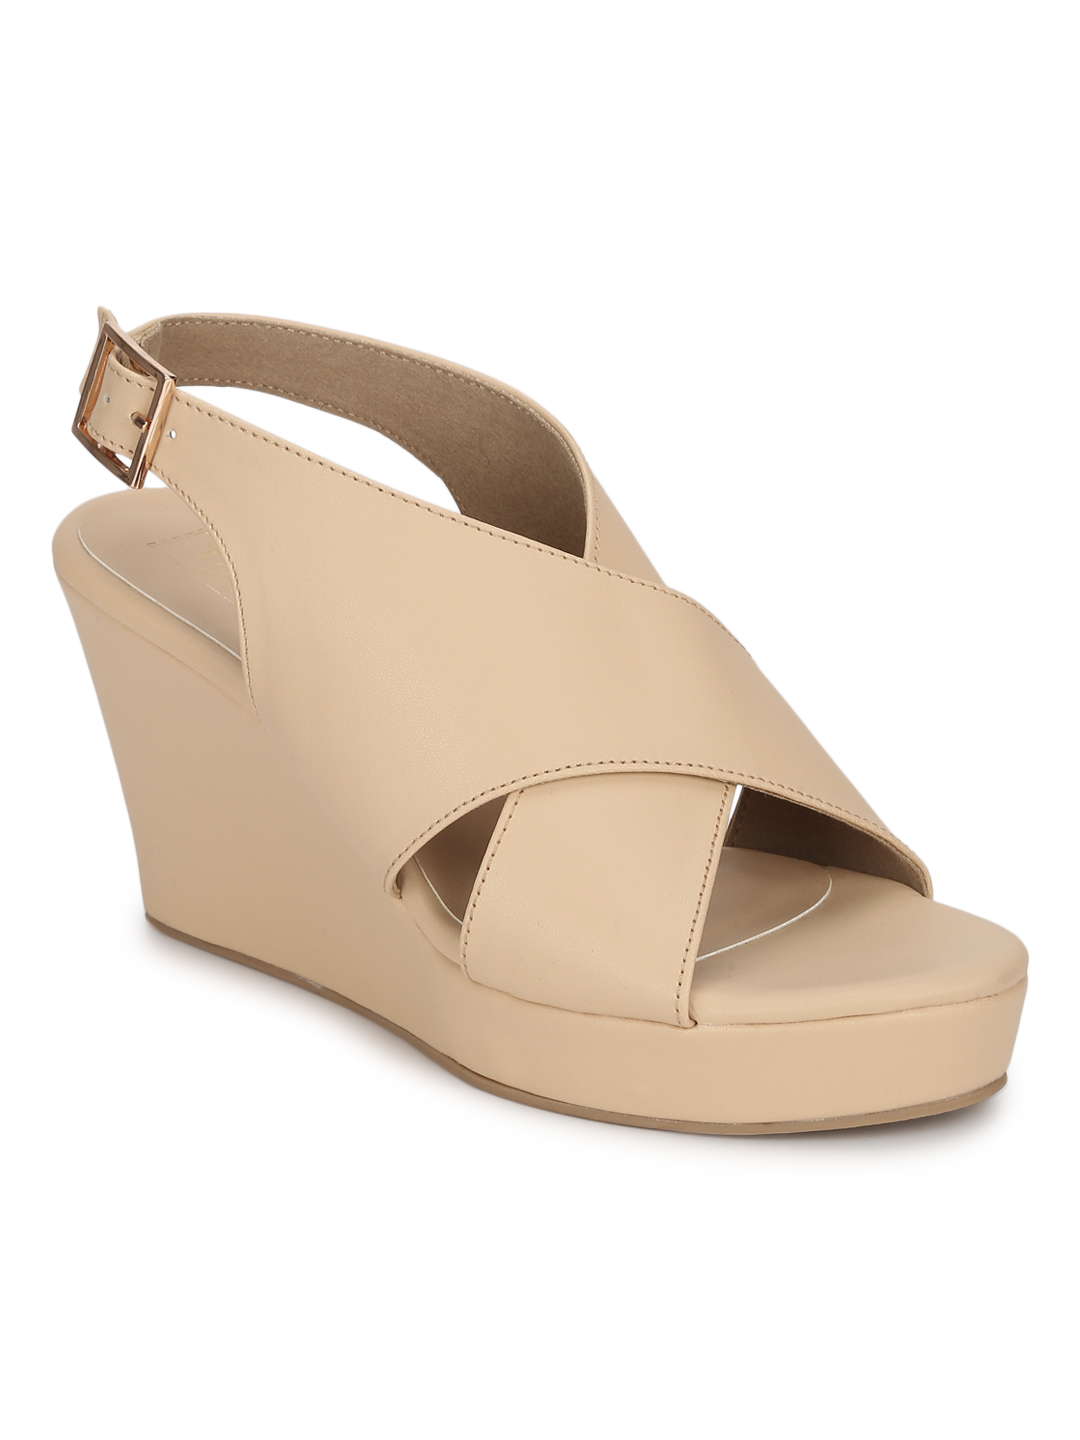 Truffle Collection | Nude PU Wedges With Crossover Straps